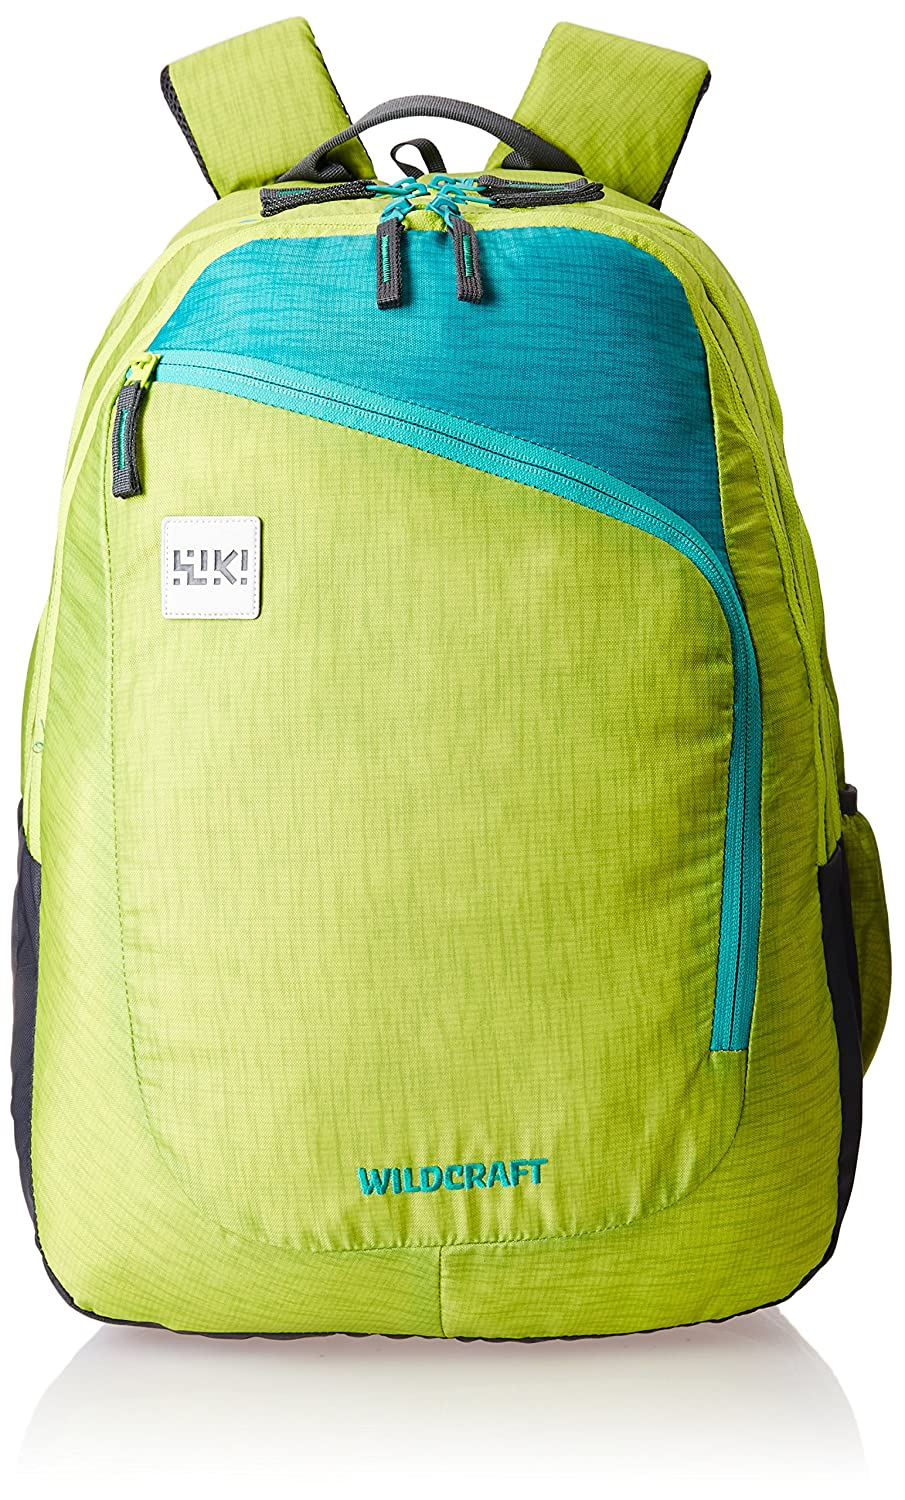 3168f42d53e5 Wildcraft Polyester 46 Ltrs Green School Backpack (Wiki 8 Hue 8)   Amazon.in  Bags